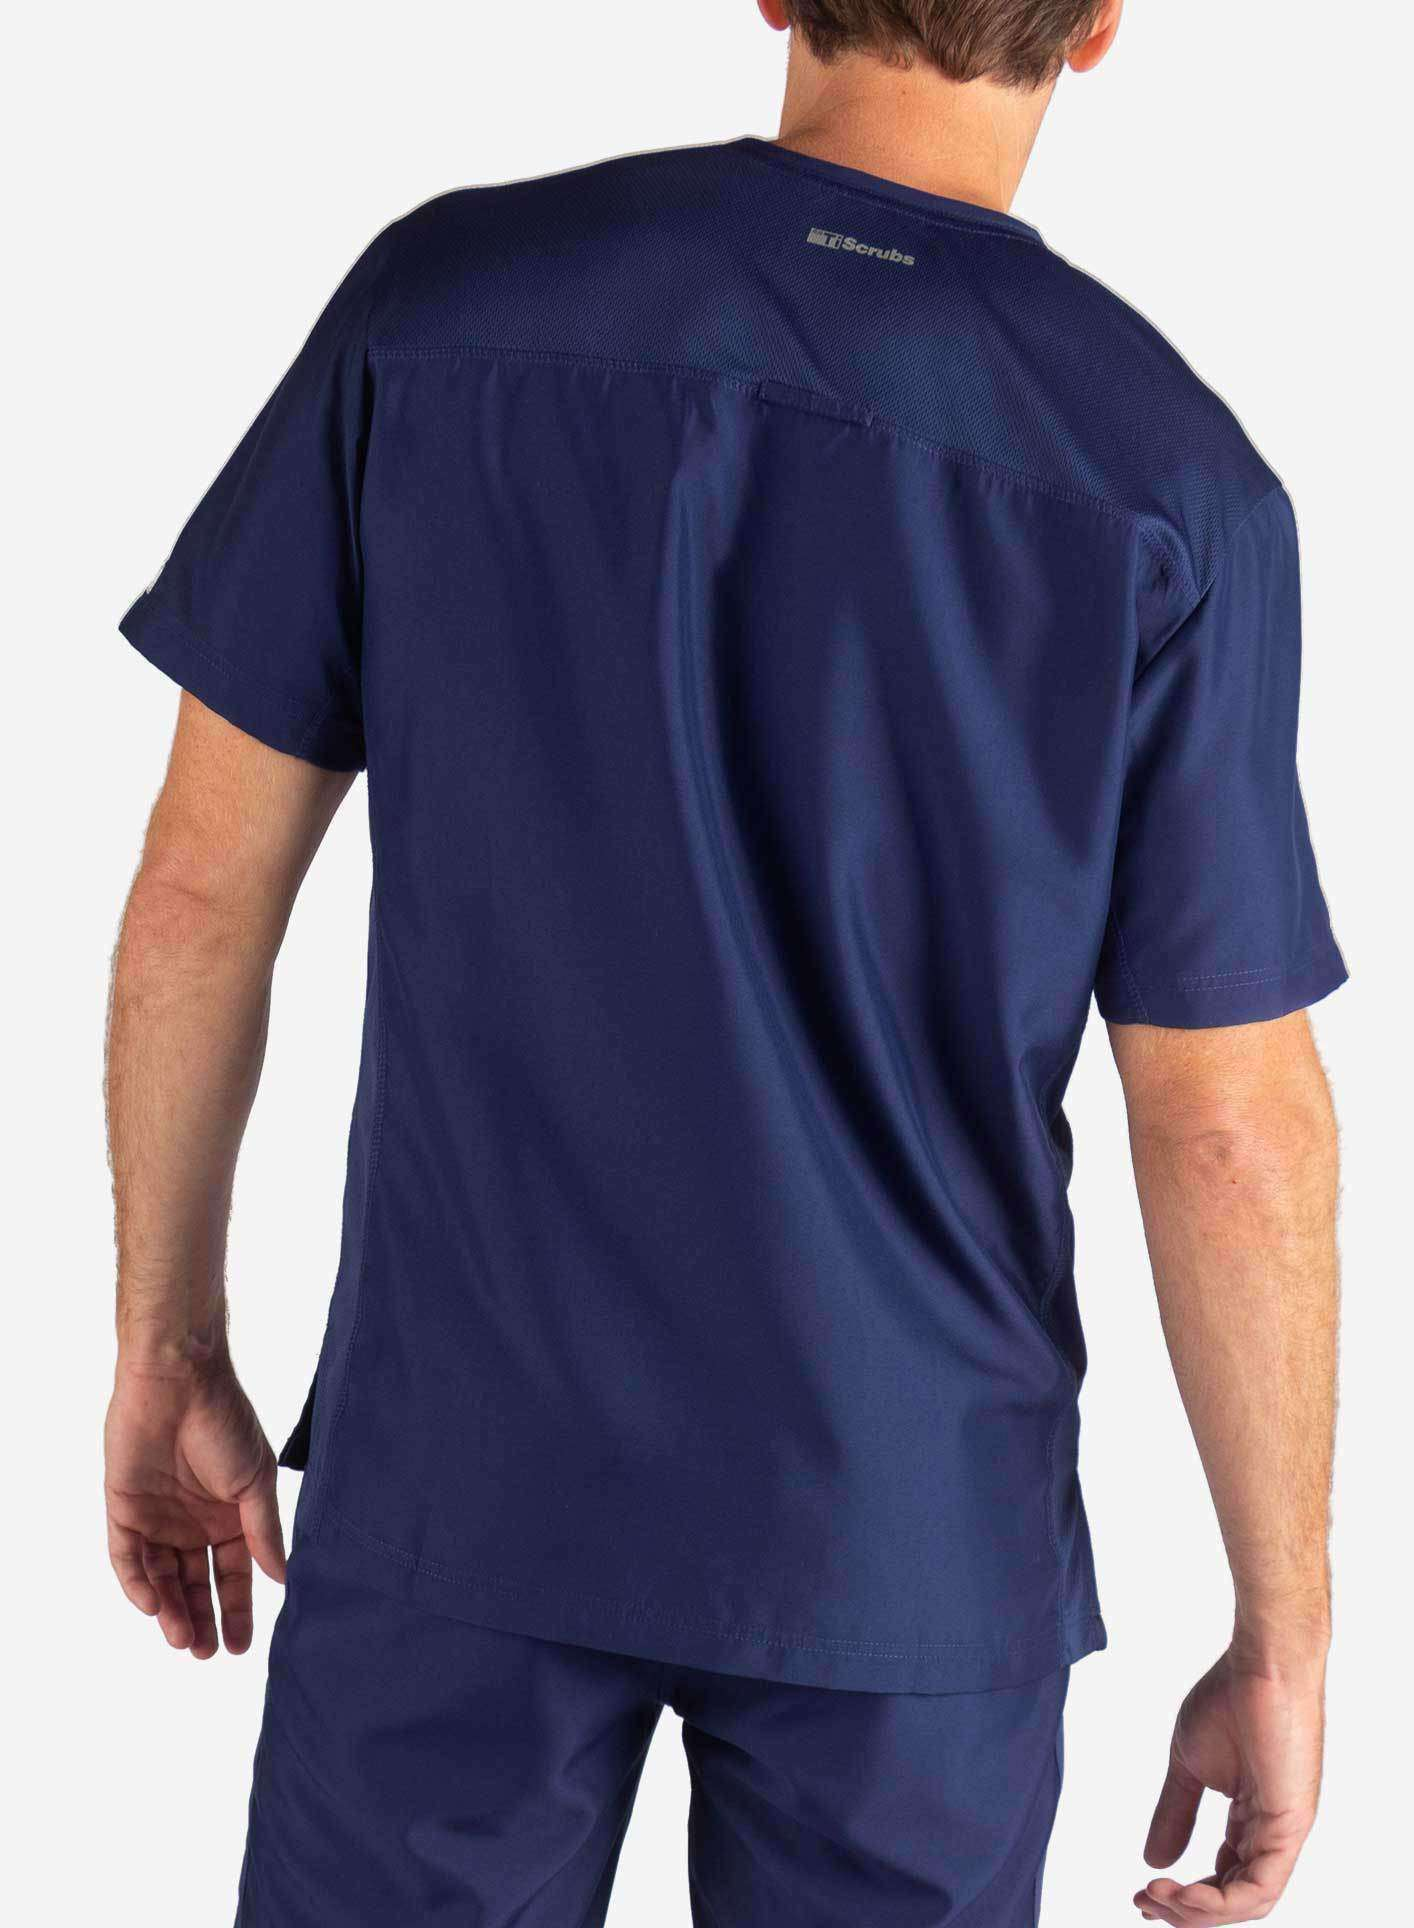 Men's 3 Pocket Scrub Top in Navy Blue Back